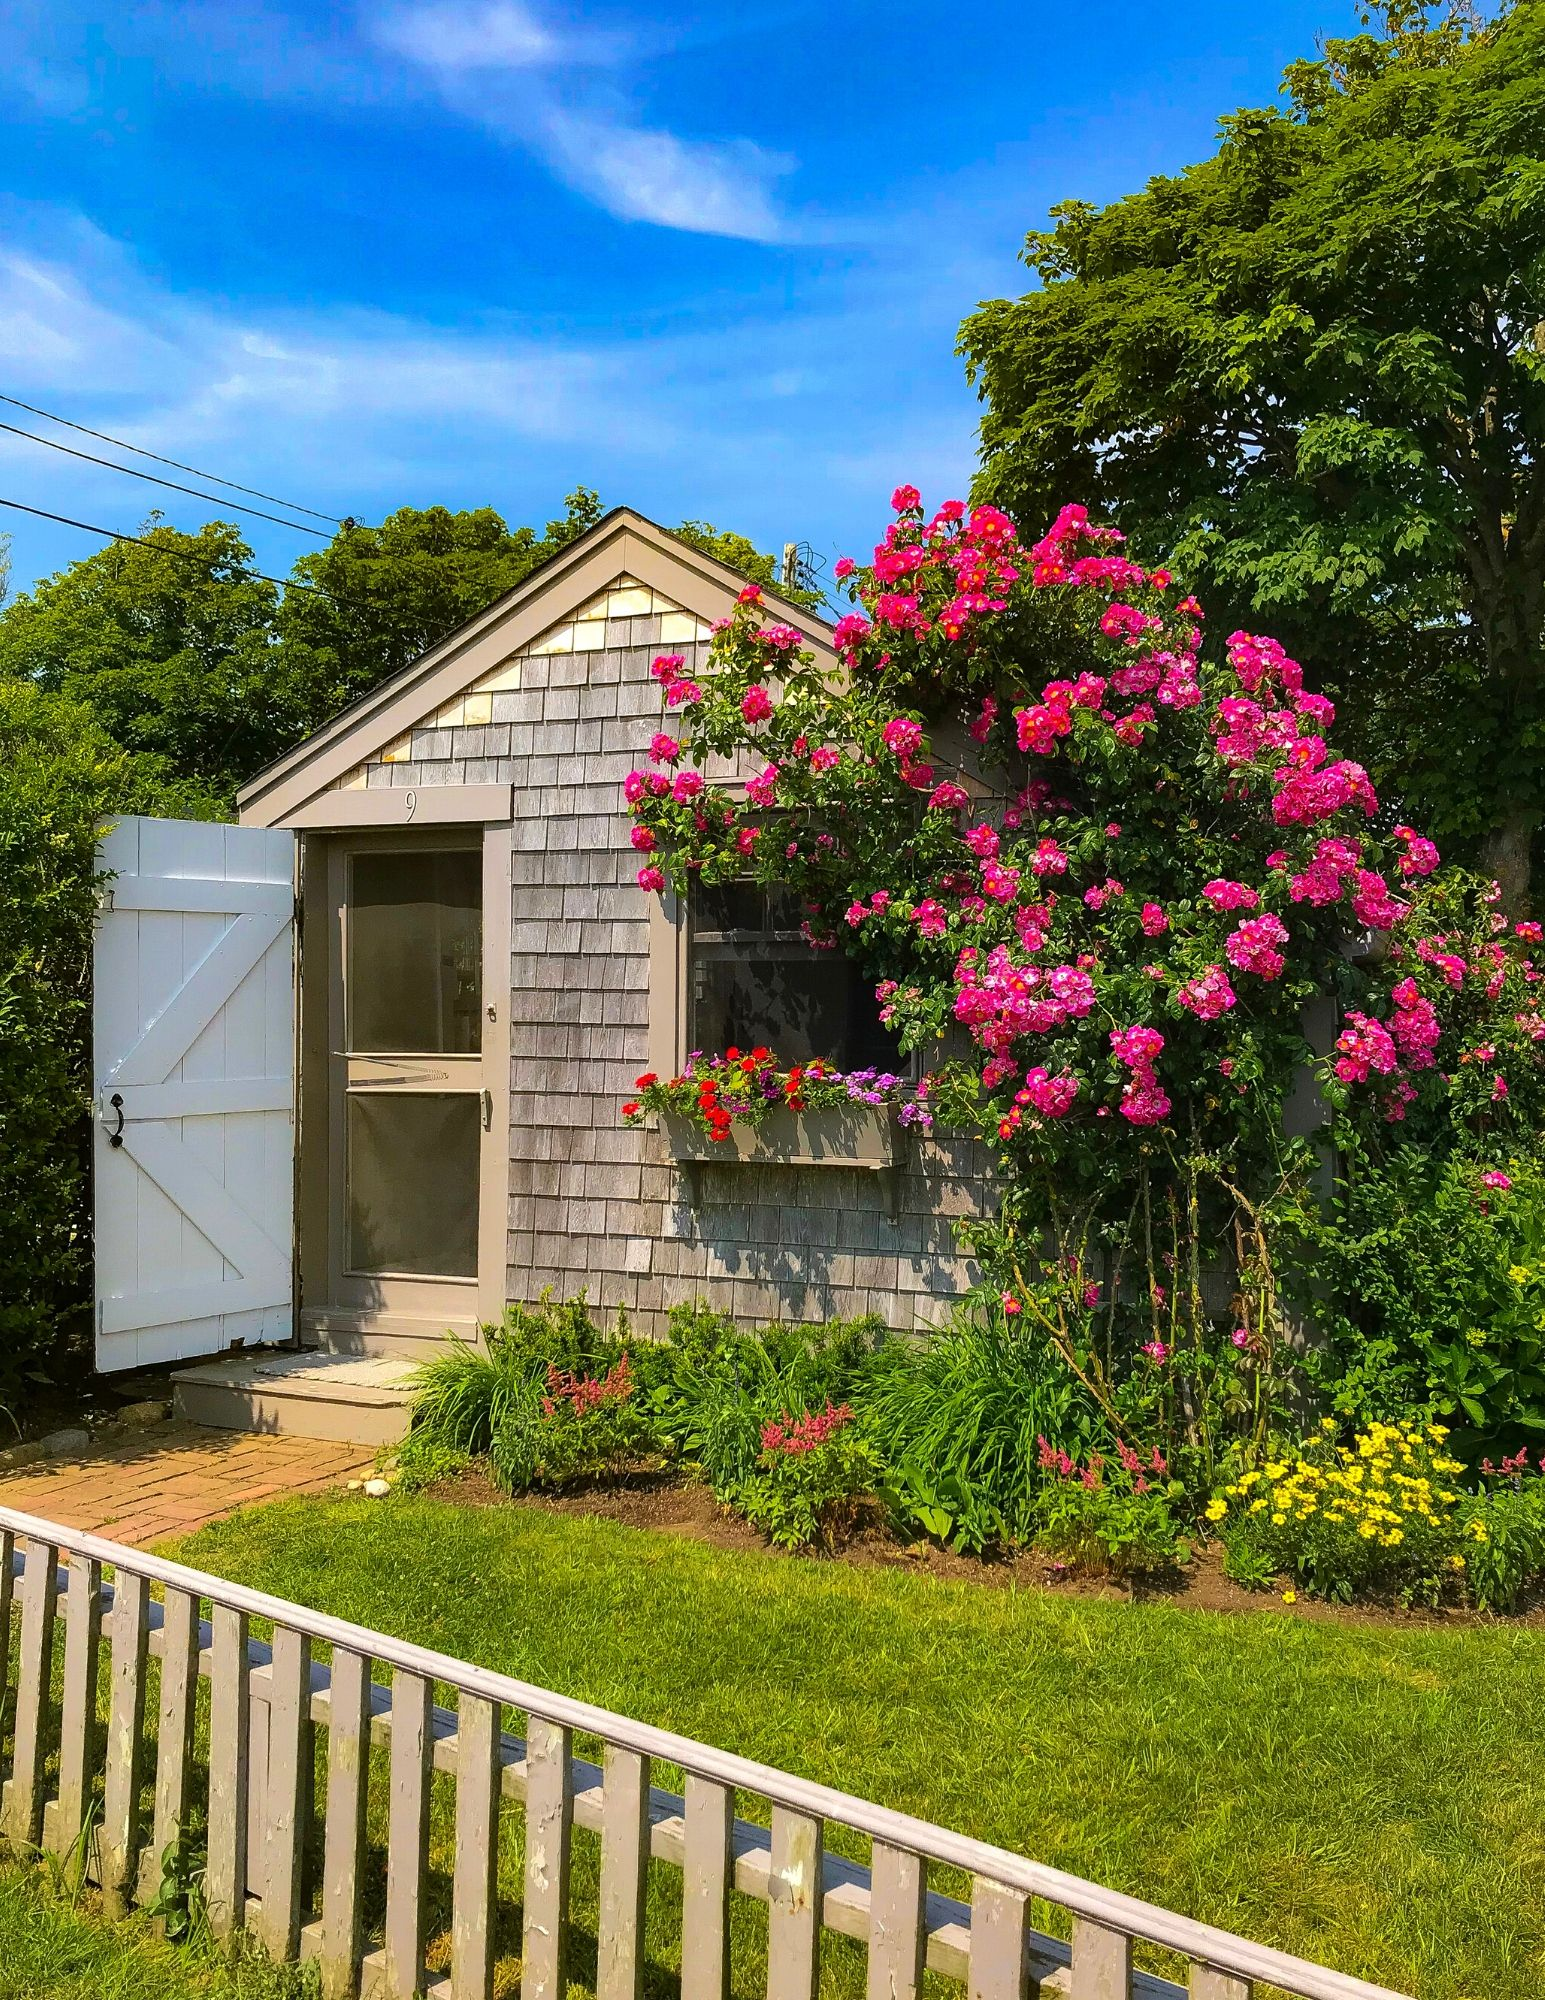 Nantucket Rose Covered Cottages in Sconset-3